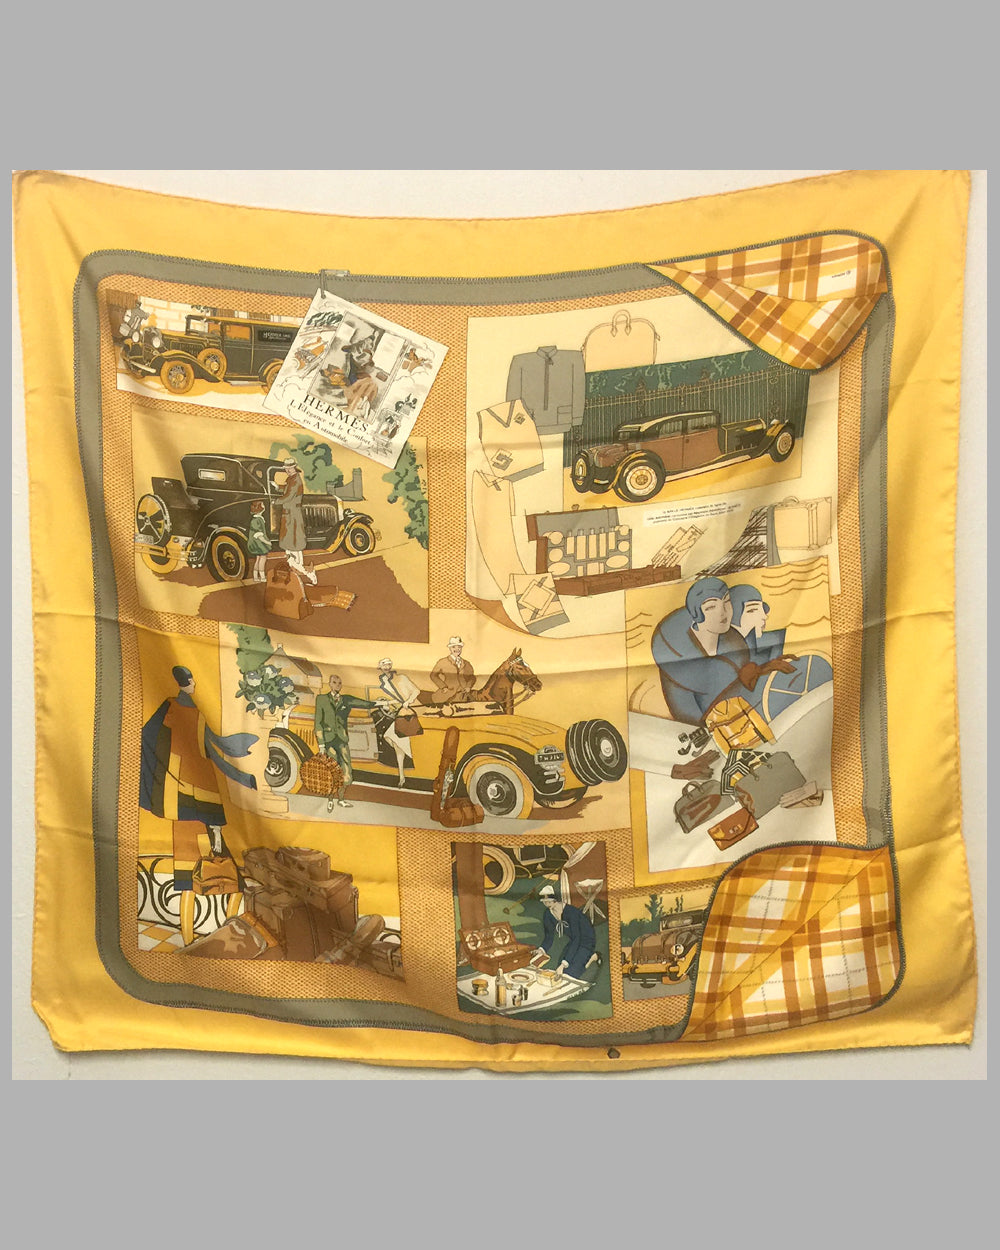 Hermes Vintage silk scarf by Caty (Cathy) Latham